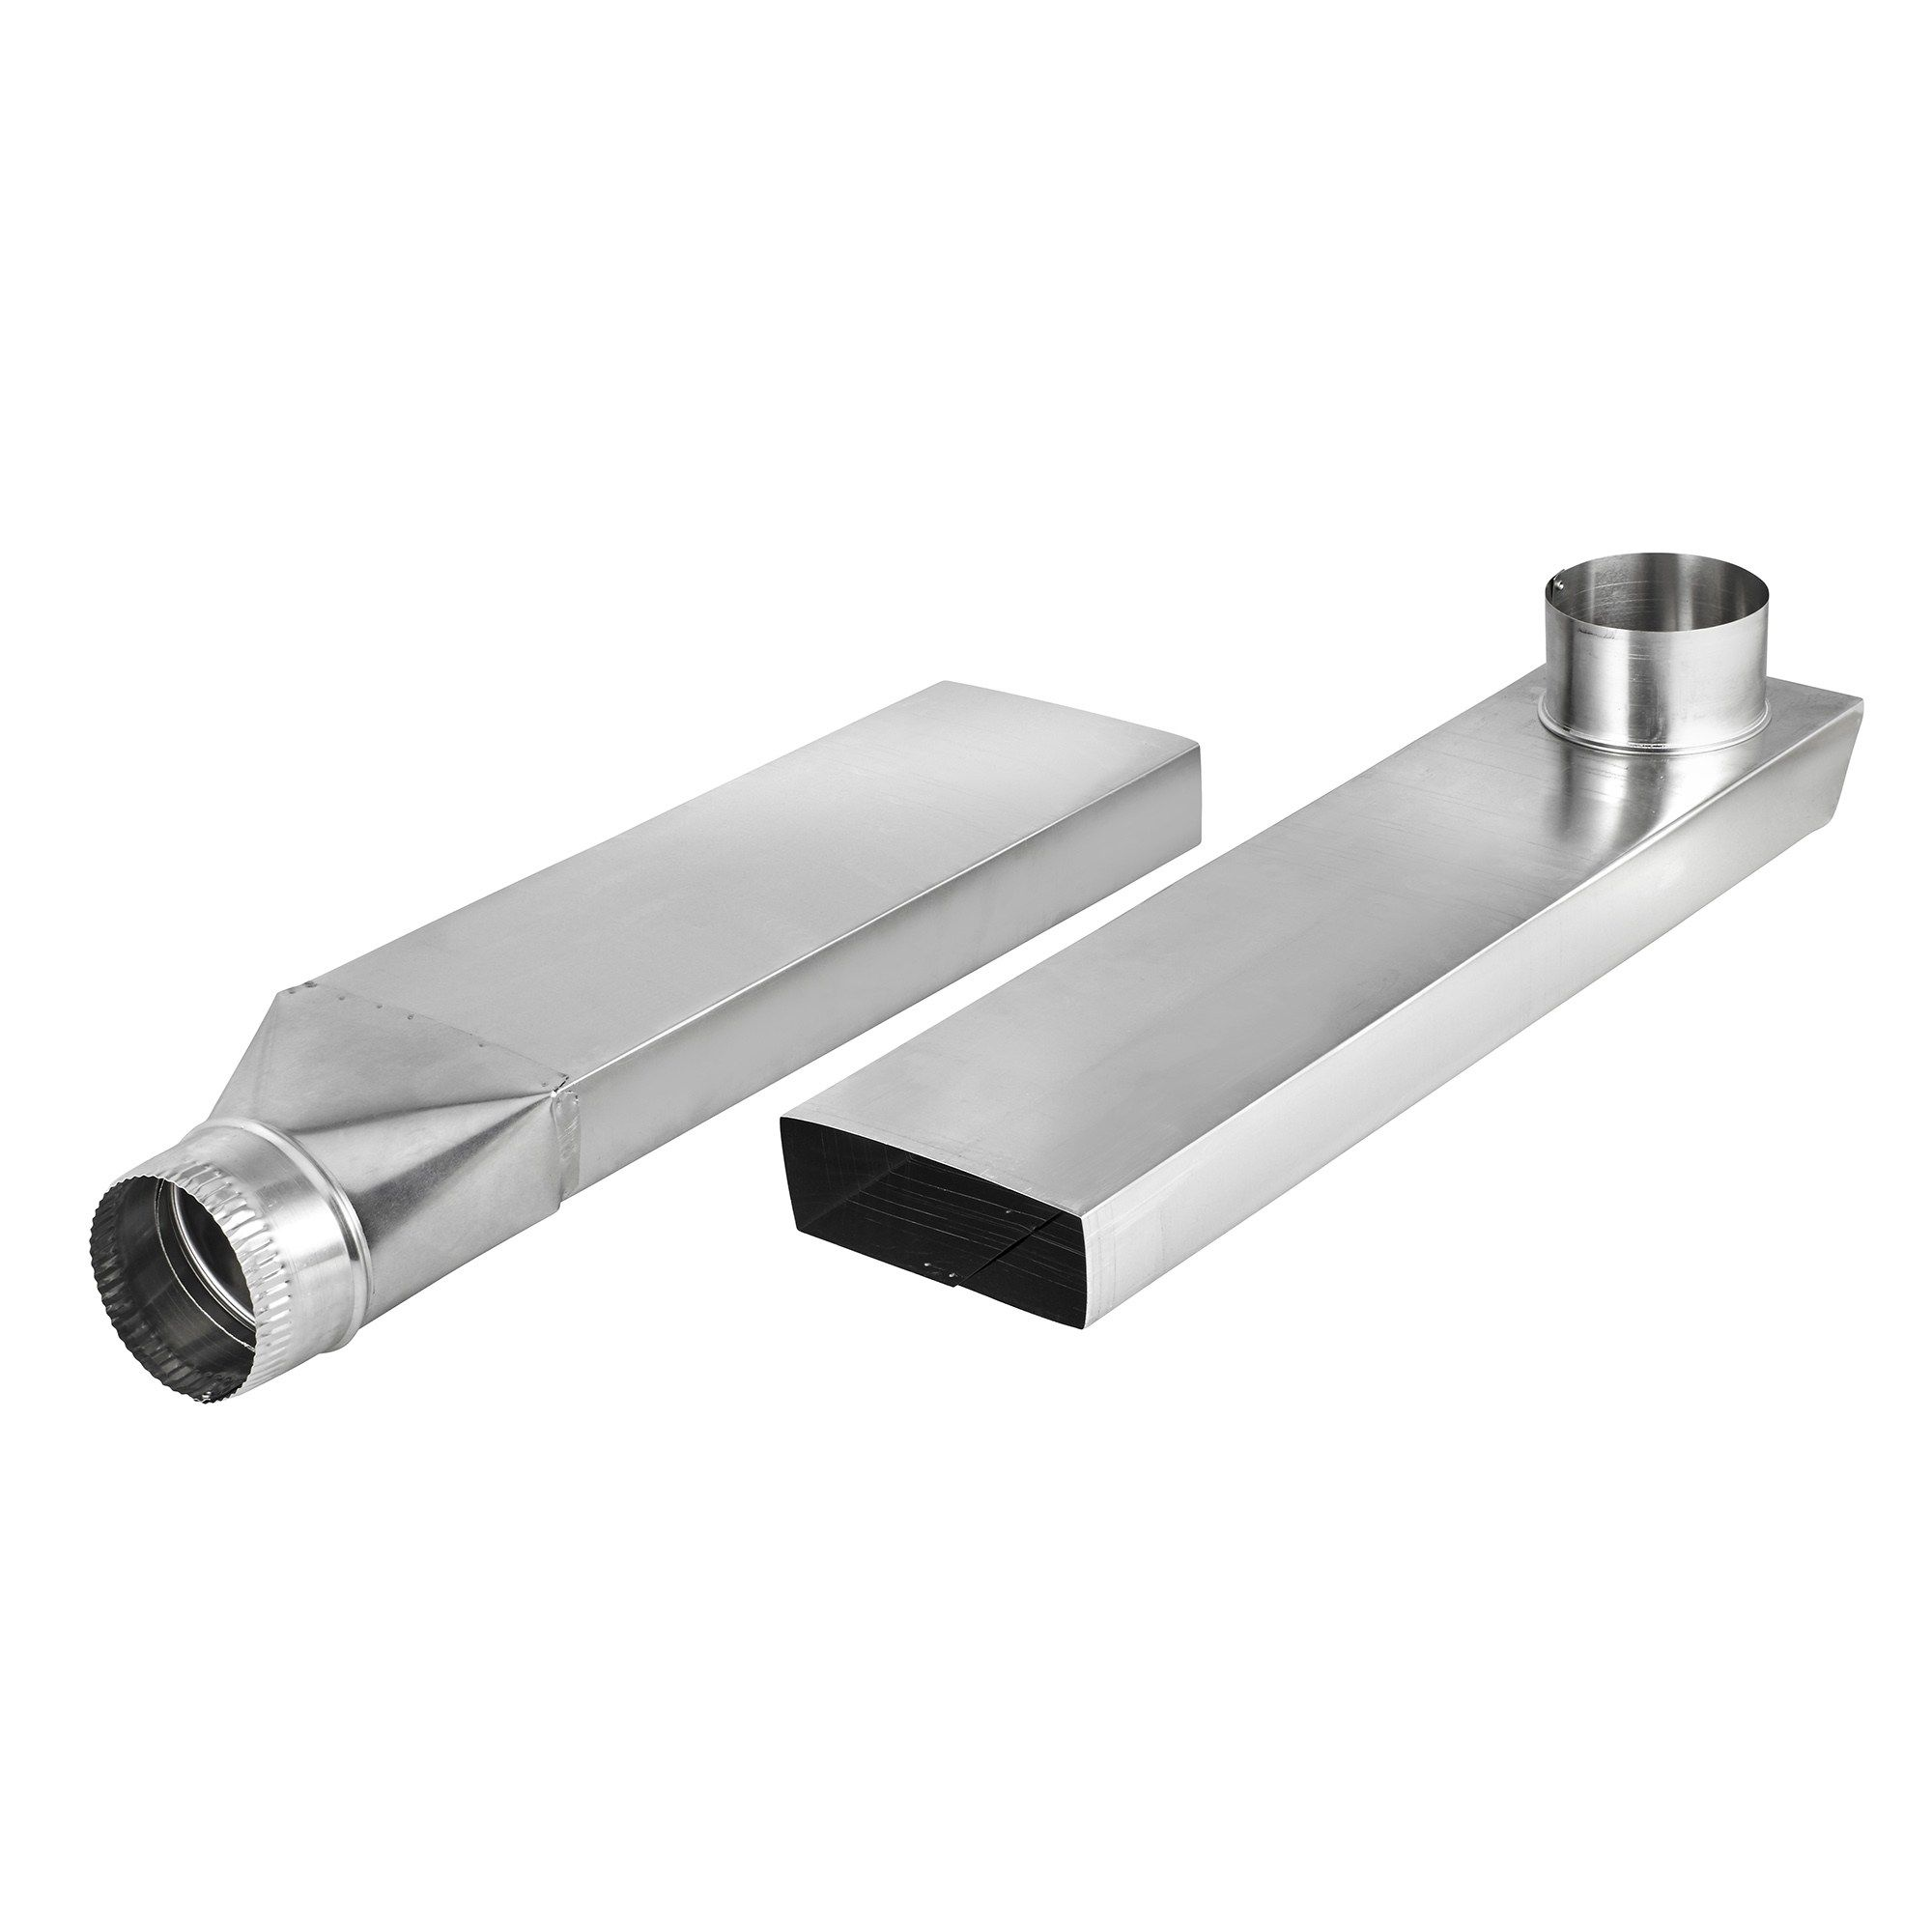 Vent Duct Size : Space saving aluminum dryer vent duct is ideal for use in